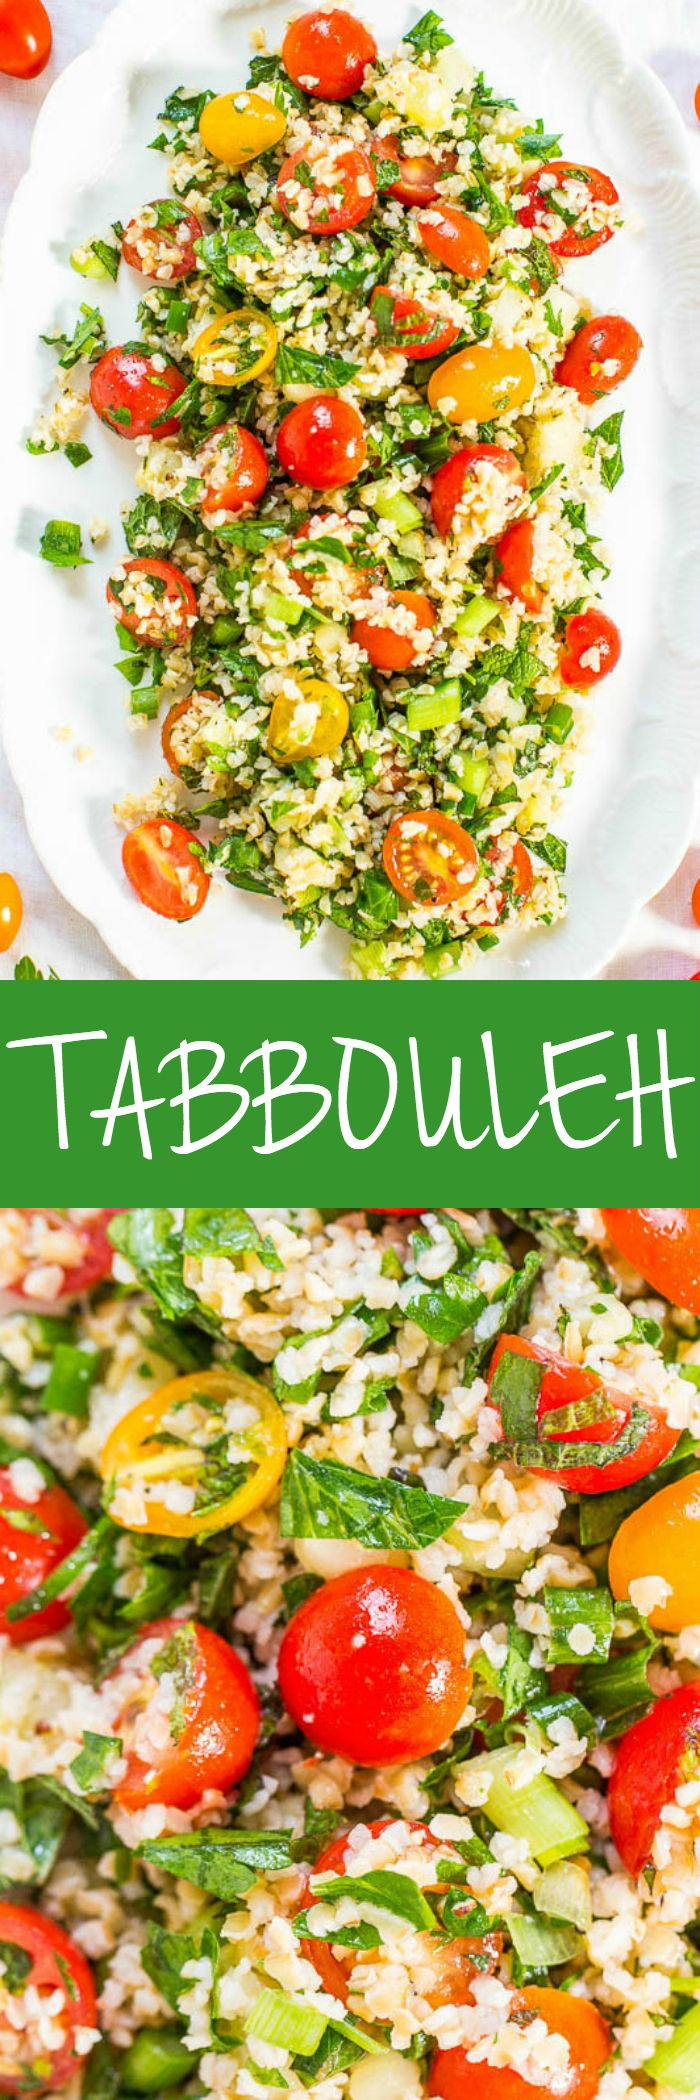 Tabbouleh - Never had it? Think couscous or quinoa mixed with vegetables, herbs, lemon and olive oil! Easy, no cooking required, healthy, and packed with so much flavor!! (Great for outdoor events because there's no mayo!)